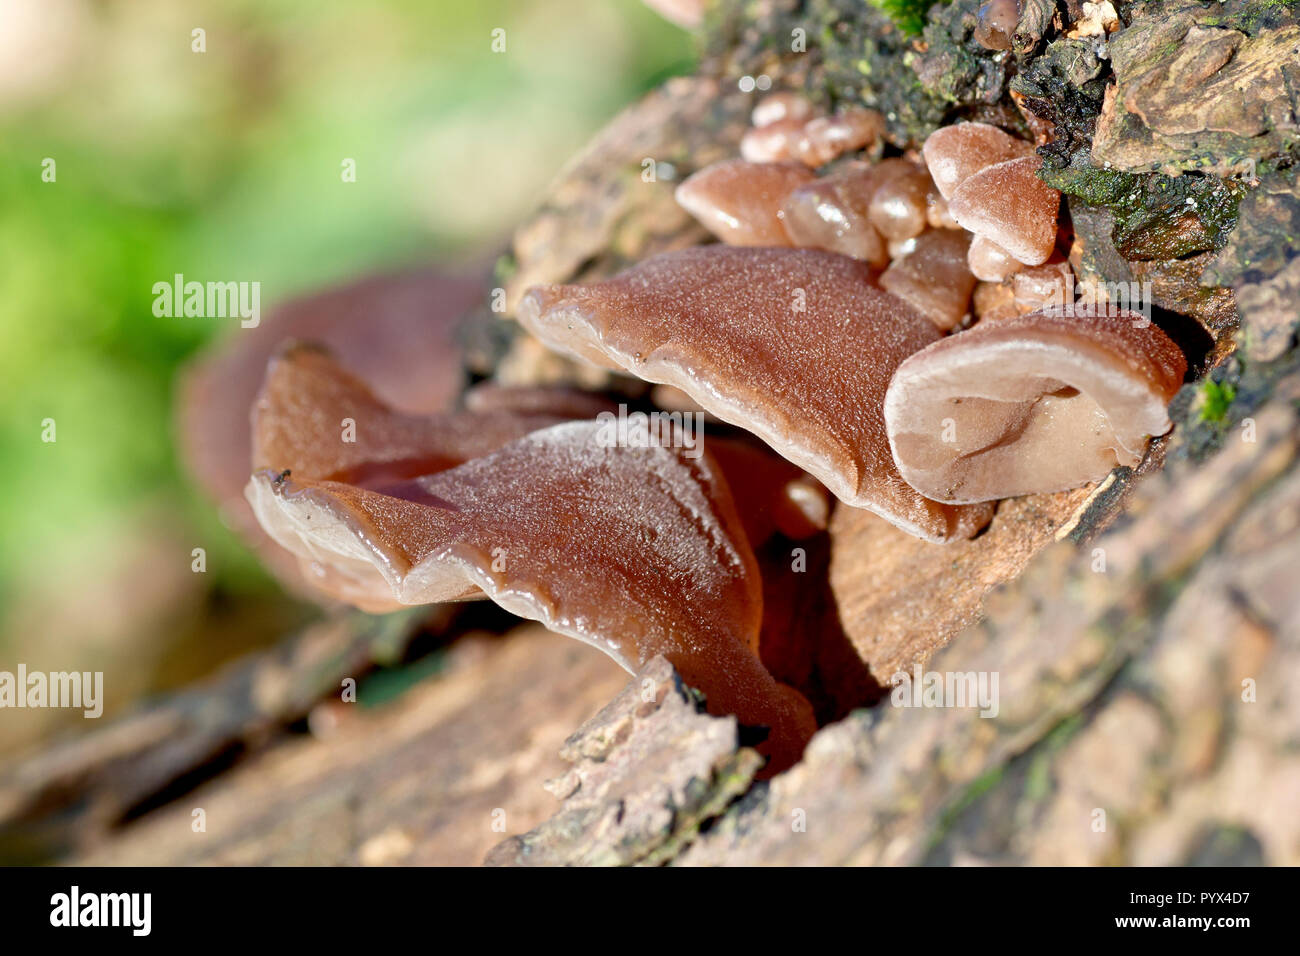 Close up of Hirneola Auricula-judae fungi growing on a fallen tree. Formerly known as Jew's Ear, now called Jelly Ear. - Stock Image